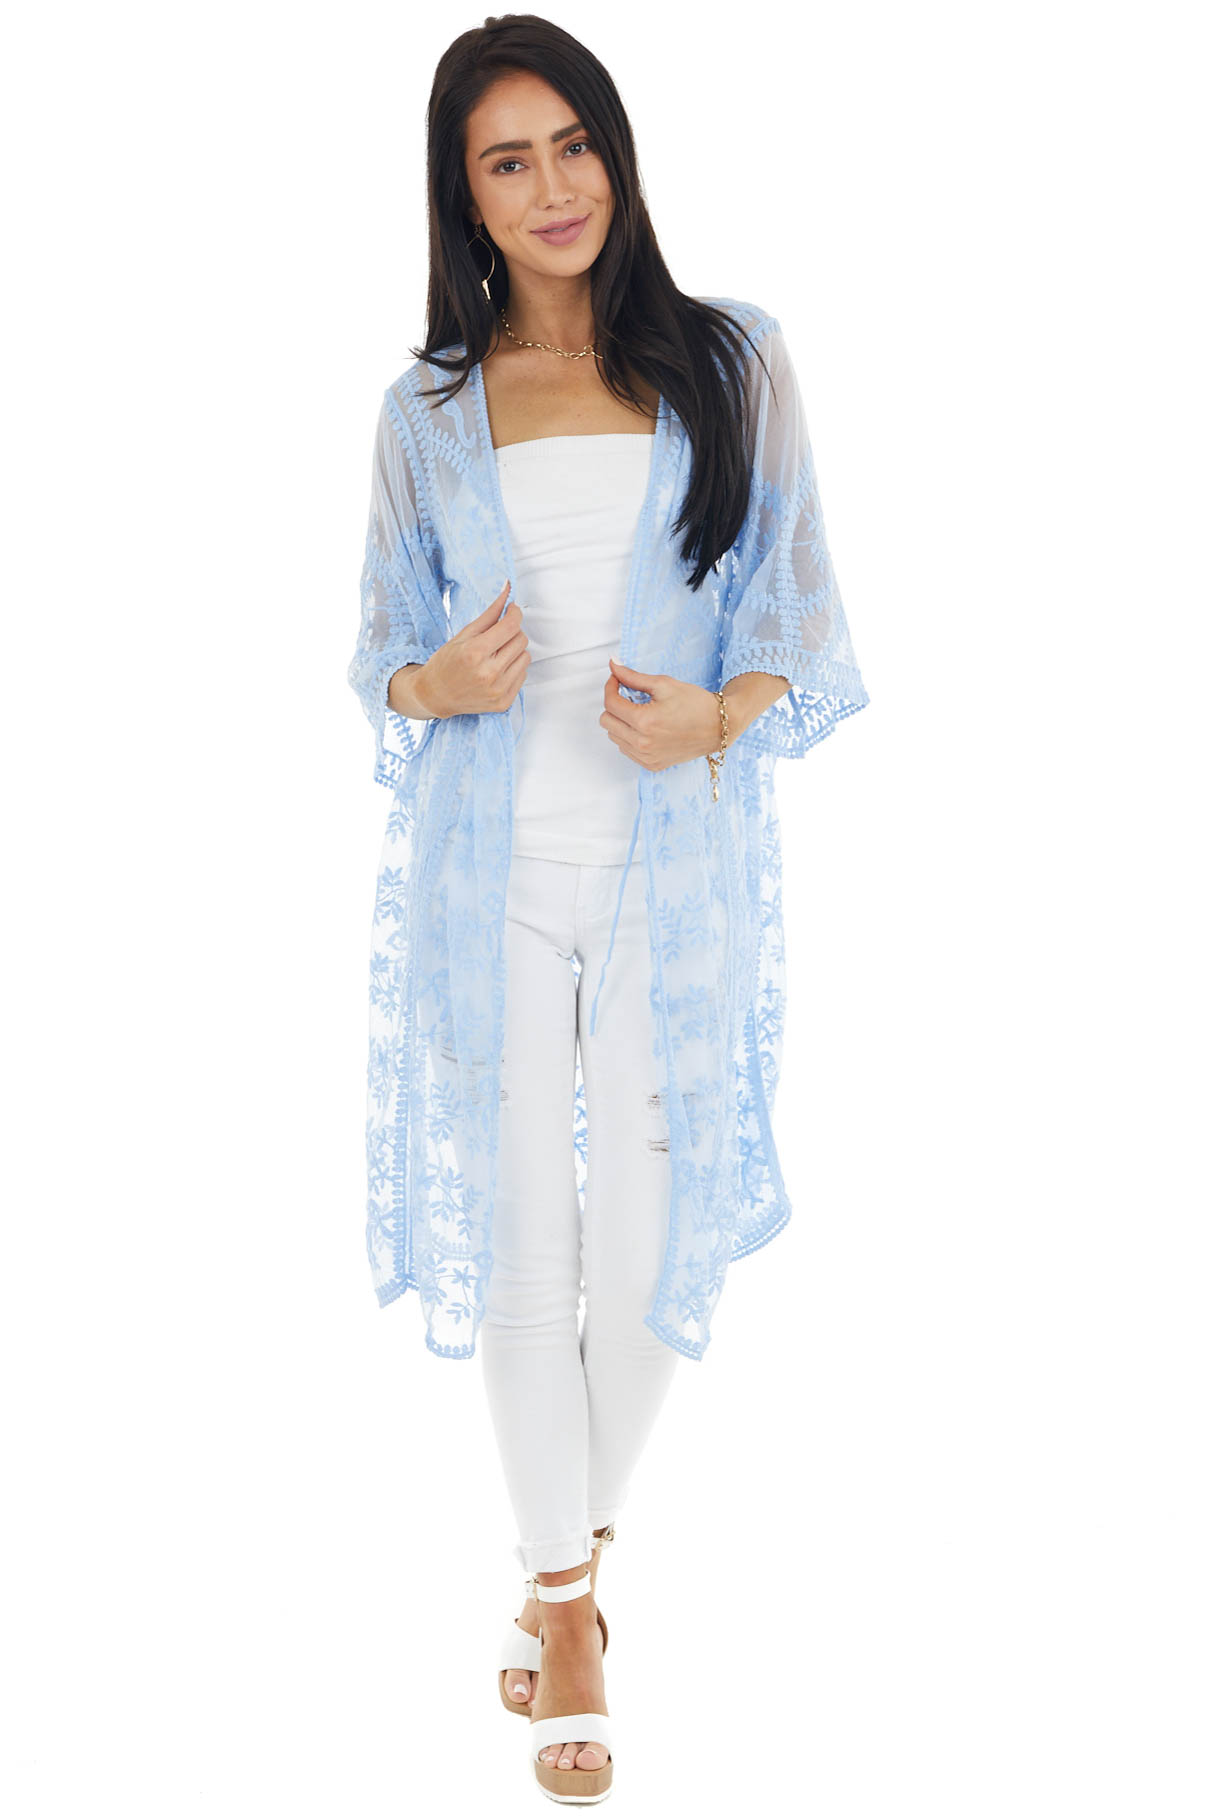 Dusty Blue Floral Lace Sheer Kimono with Front Tie Detail